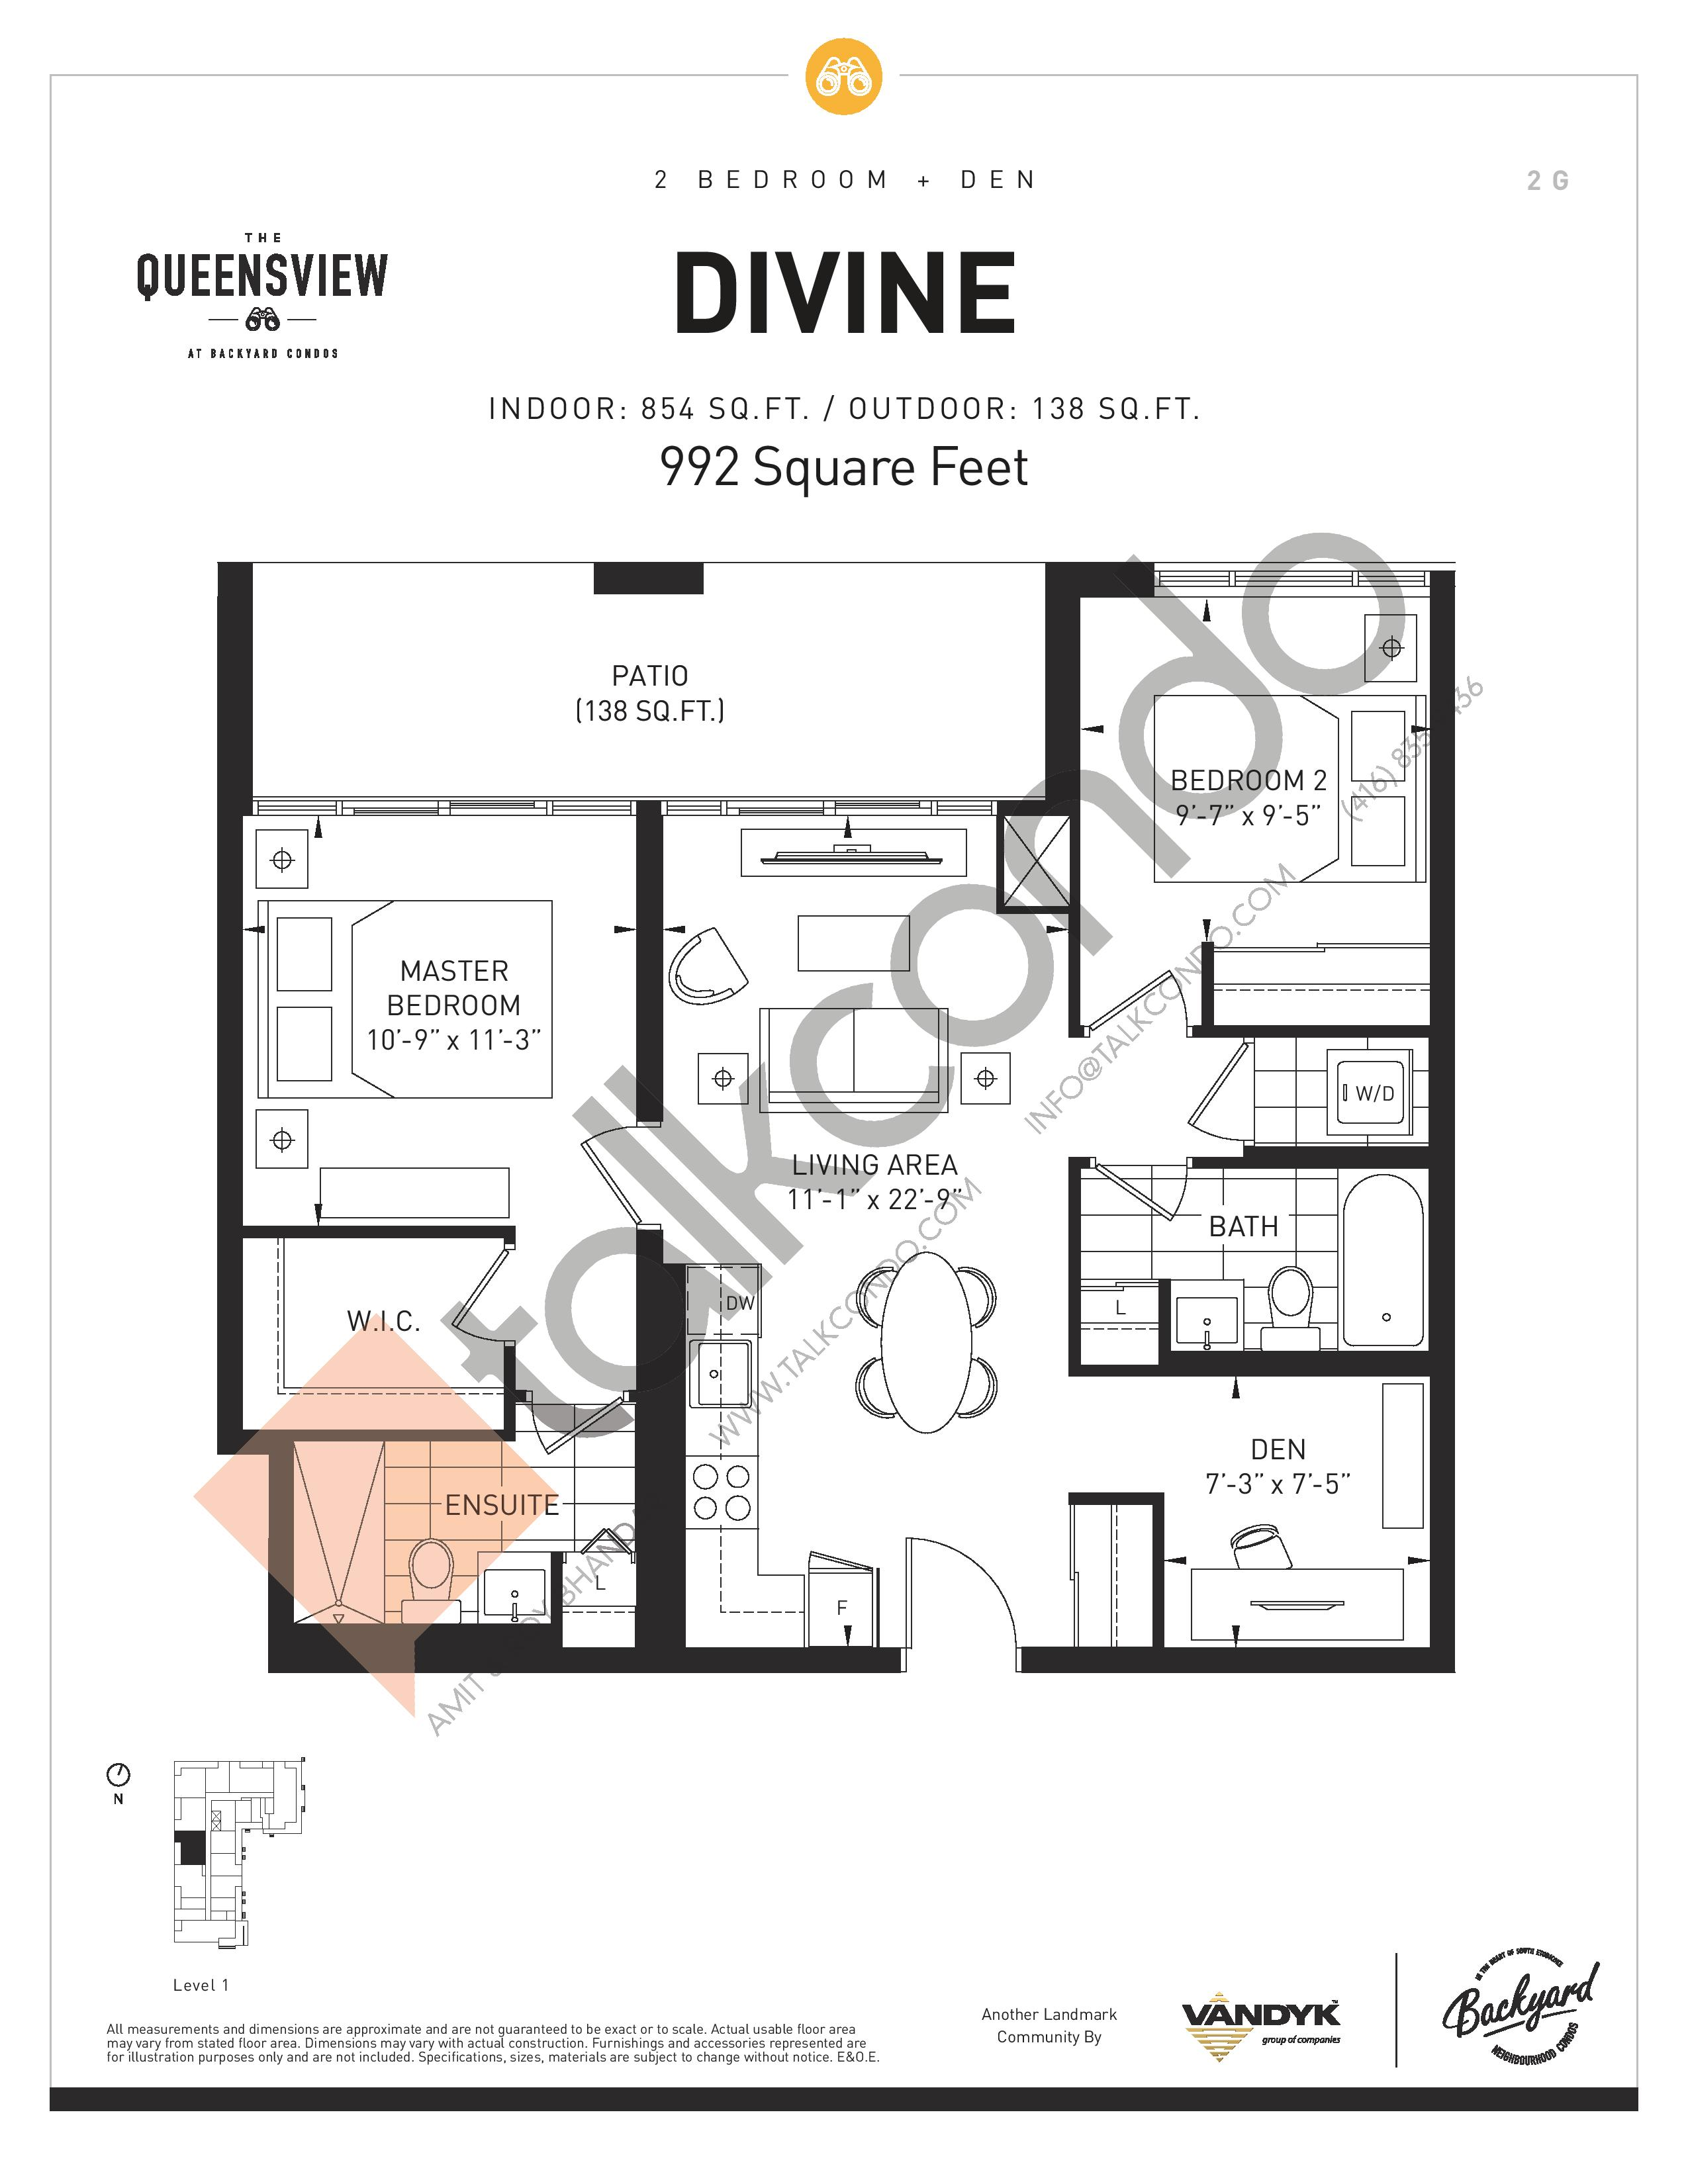 Divine Floor Plan at The Queensview at Backyard Condos - 854 sq.ft